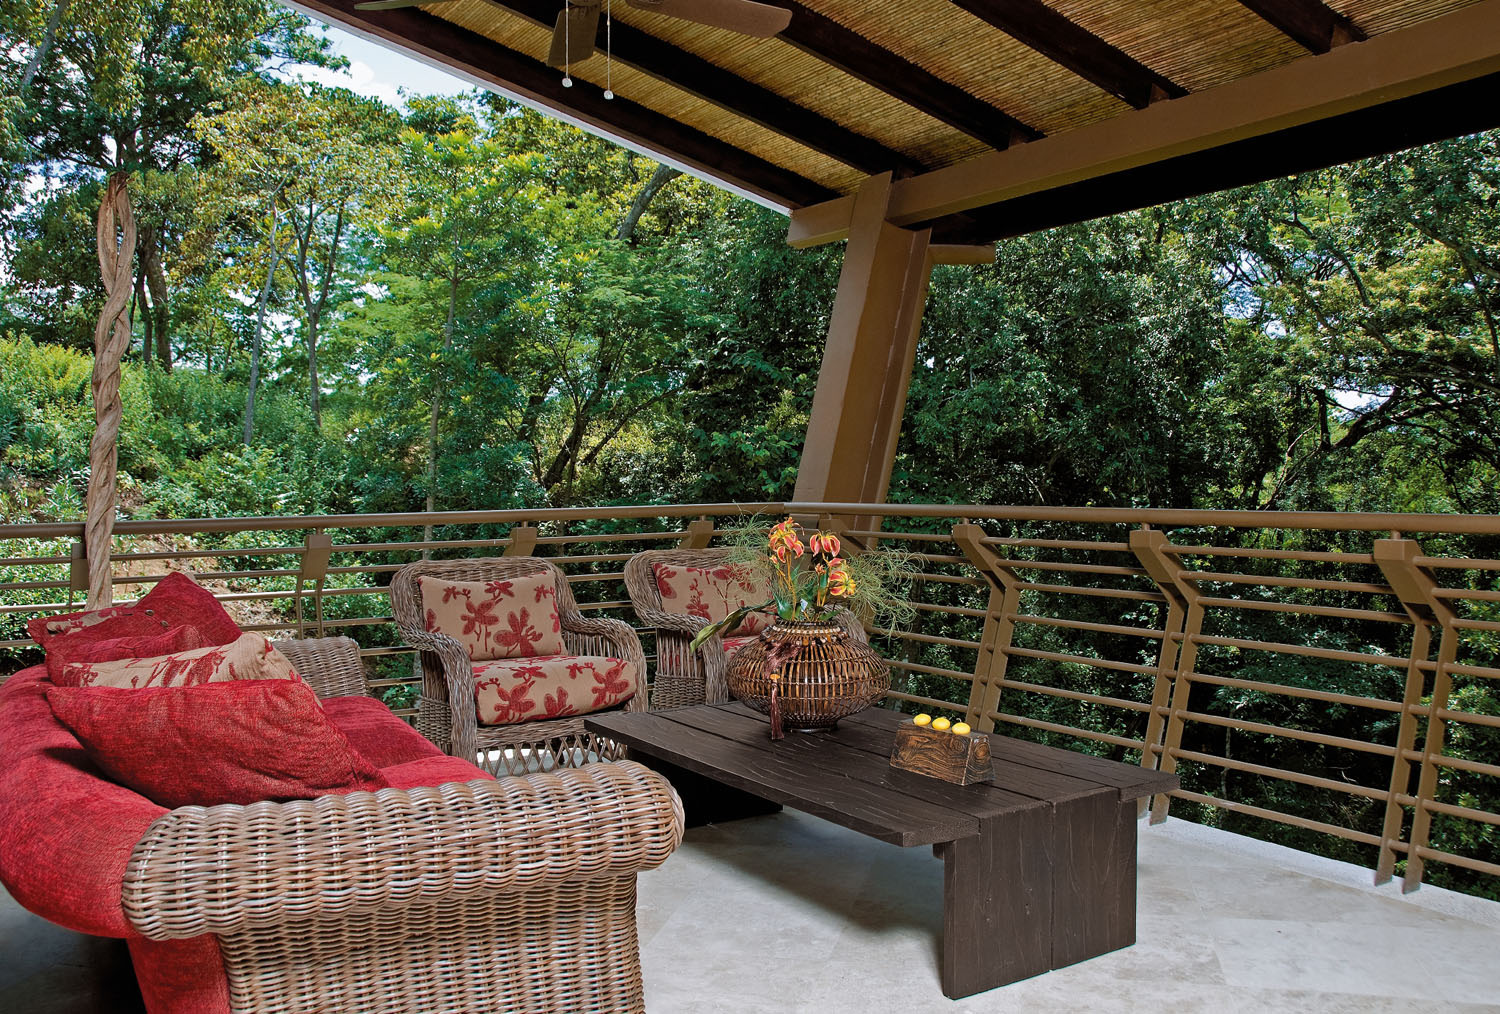 Award-Winning Luxury Vacation Home In A Tropical Forest ...